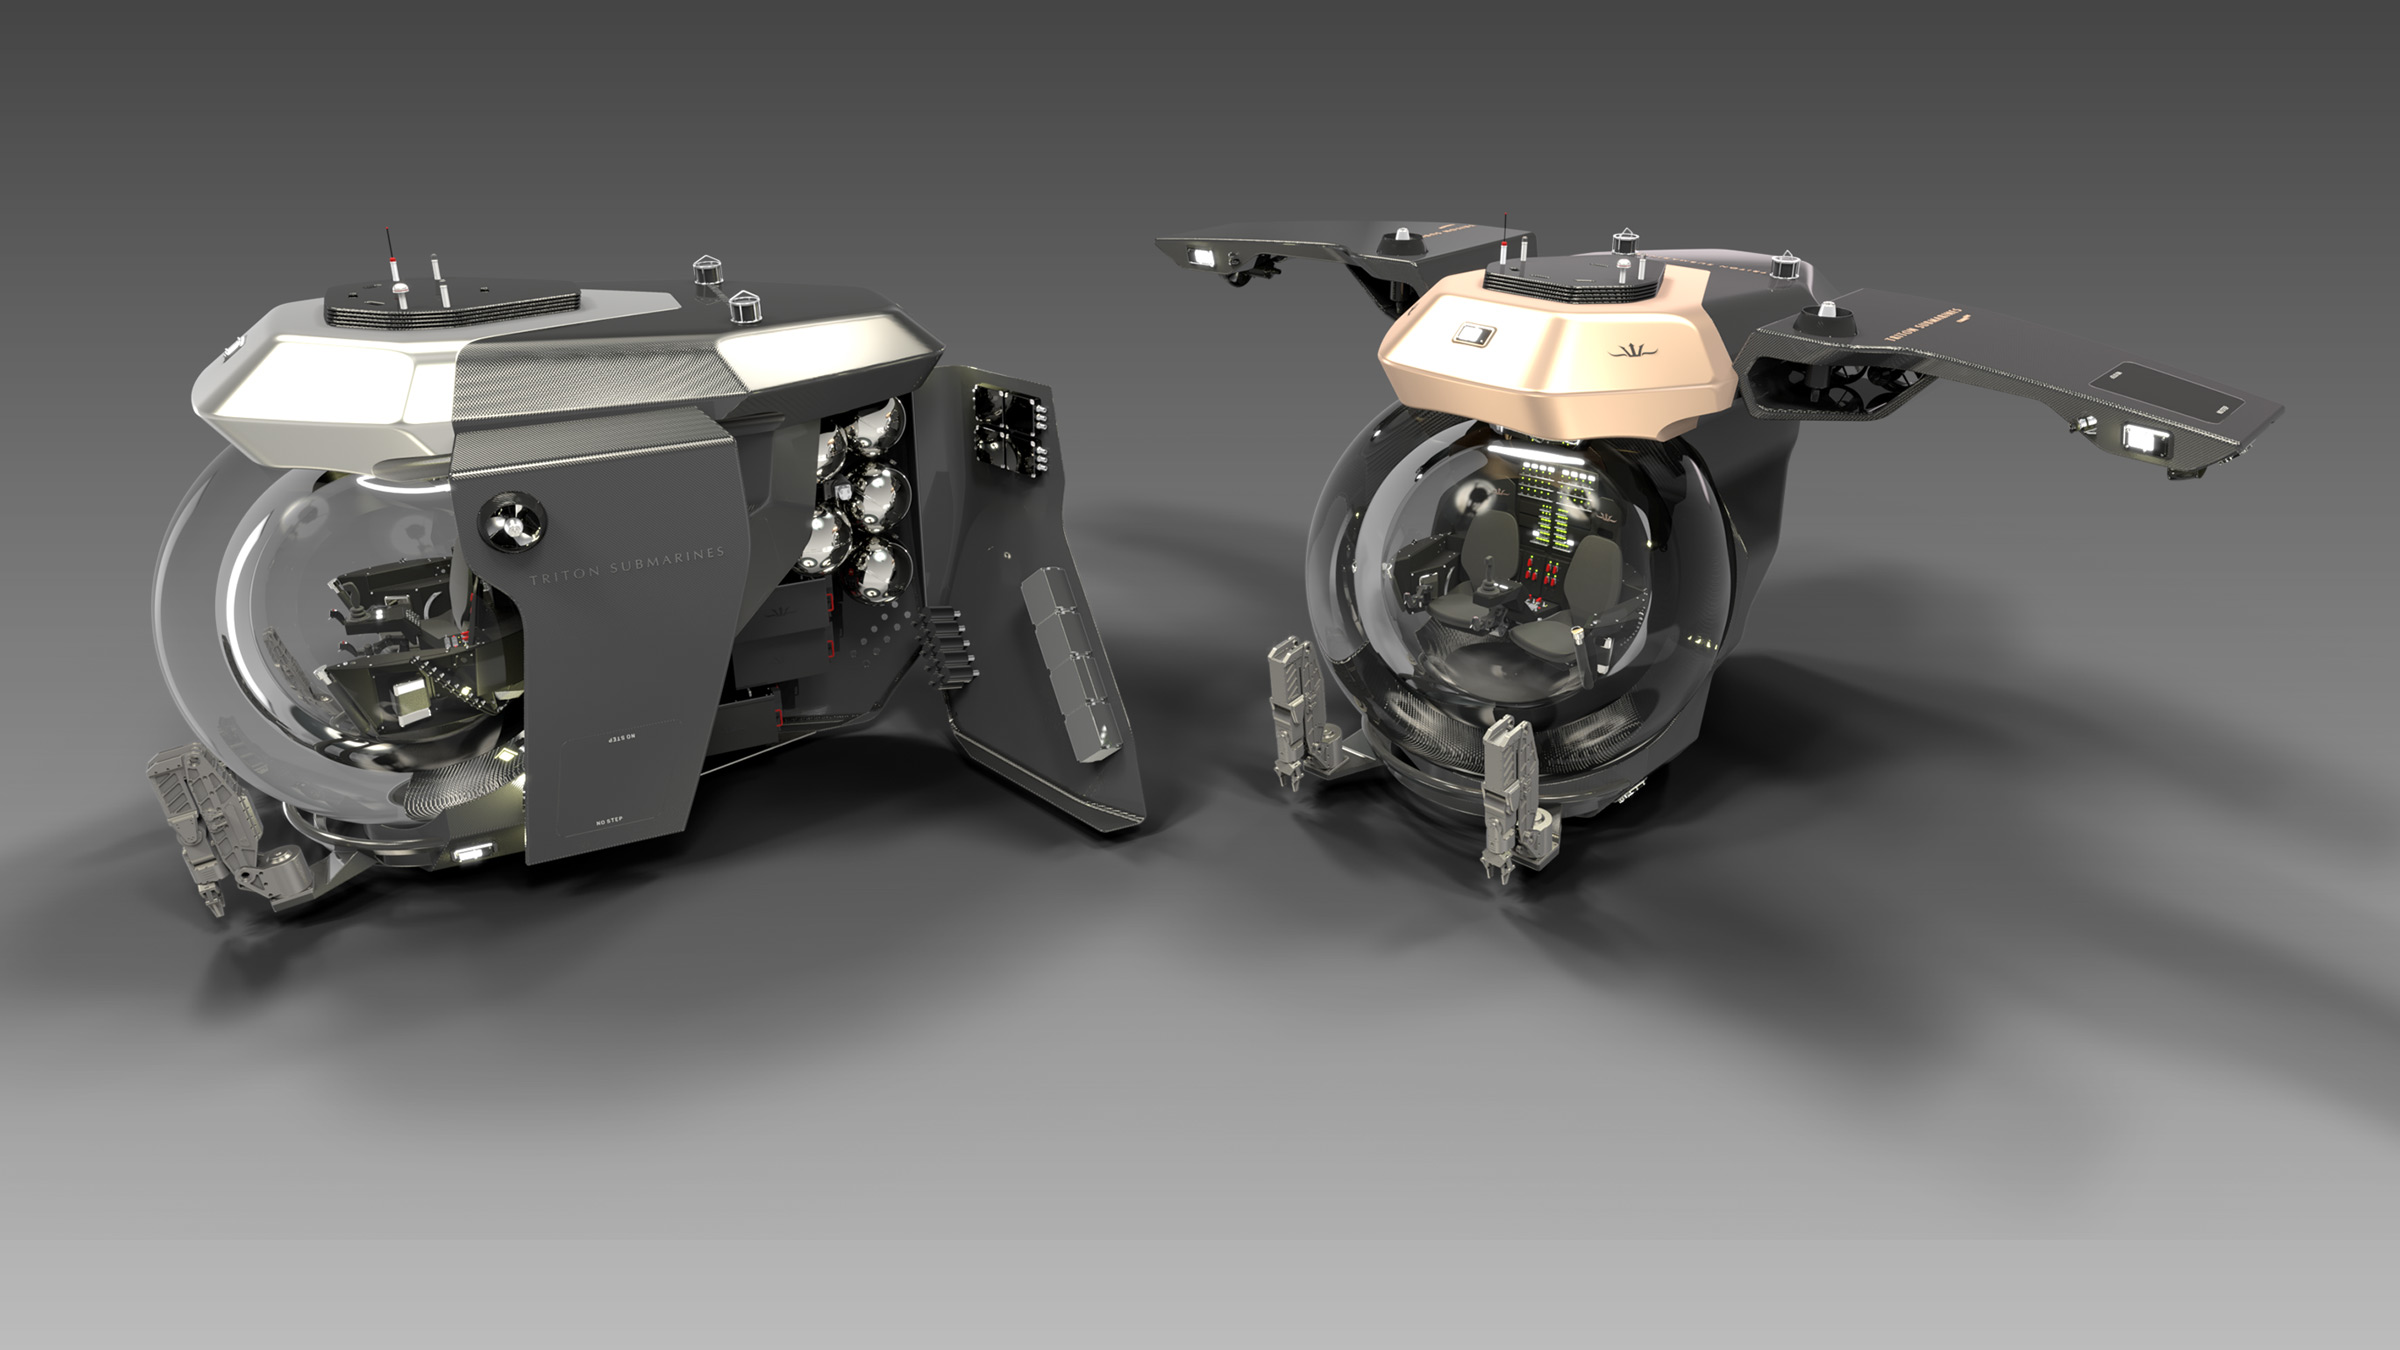 Twin Triton Gull Wing submersibles